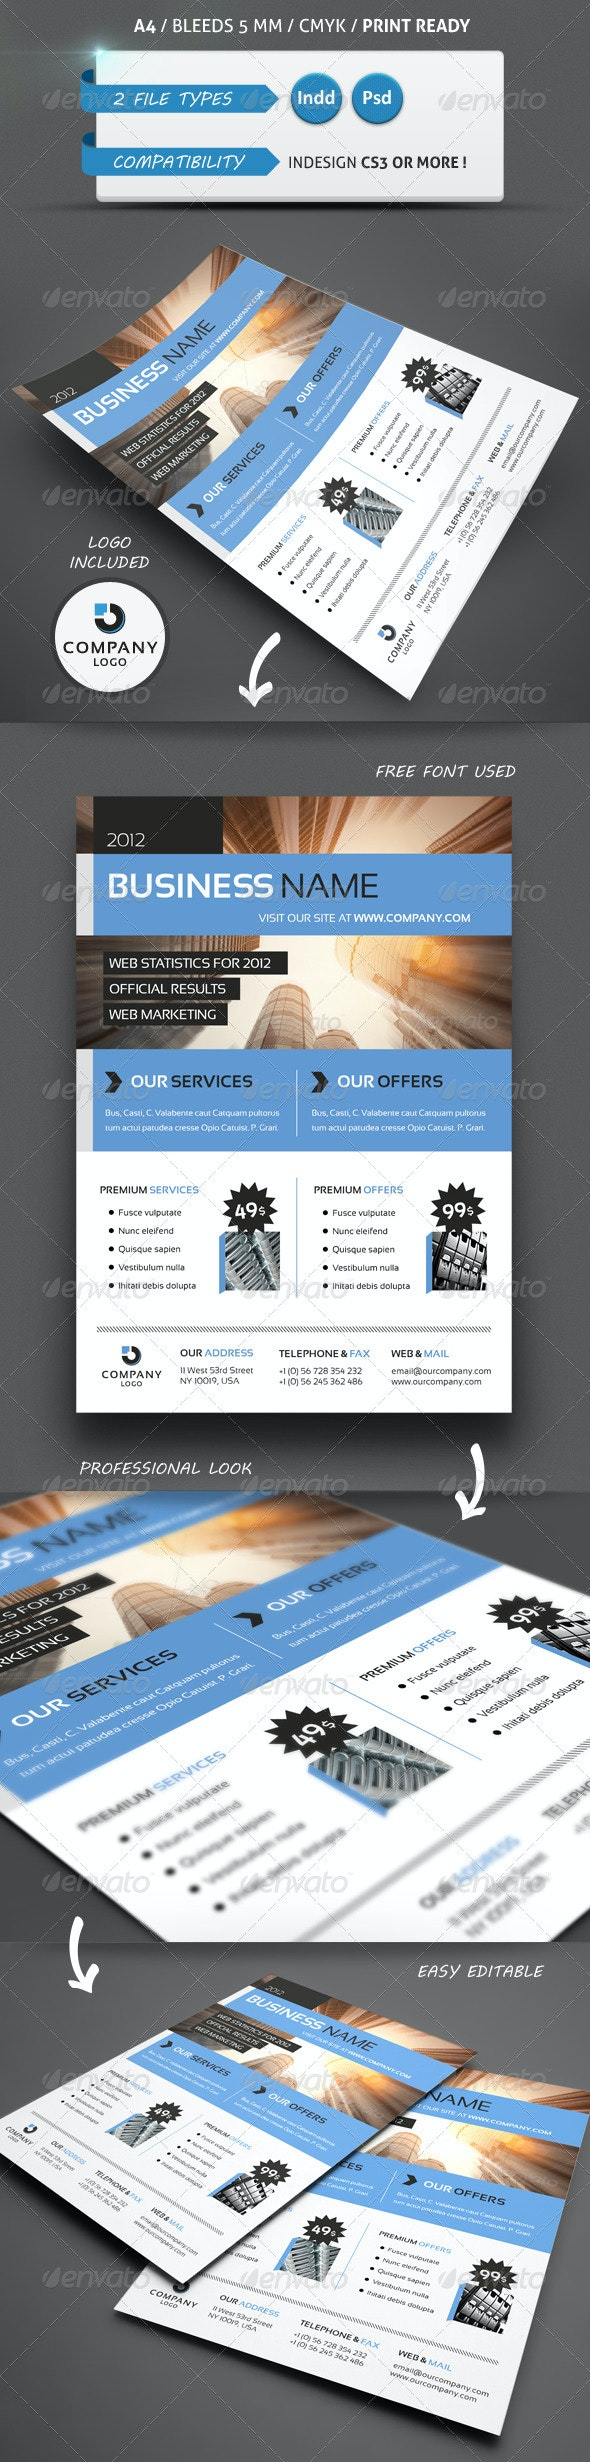 MODERN BUSINESS FLYER TEMPLATE A4 - Commerce Flyers